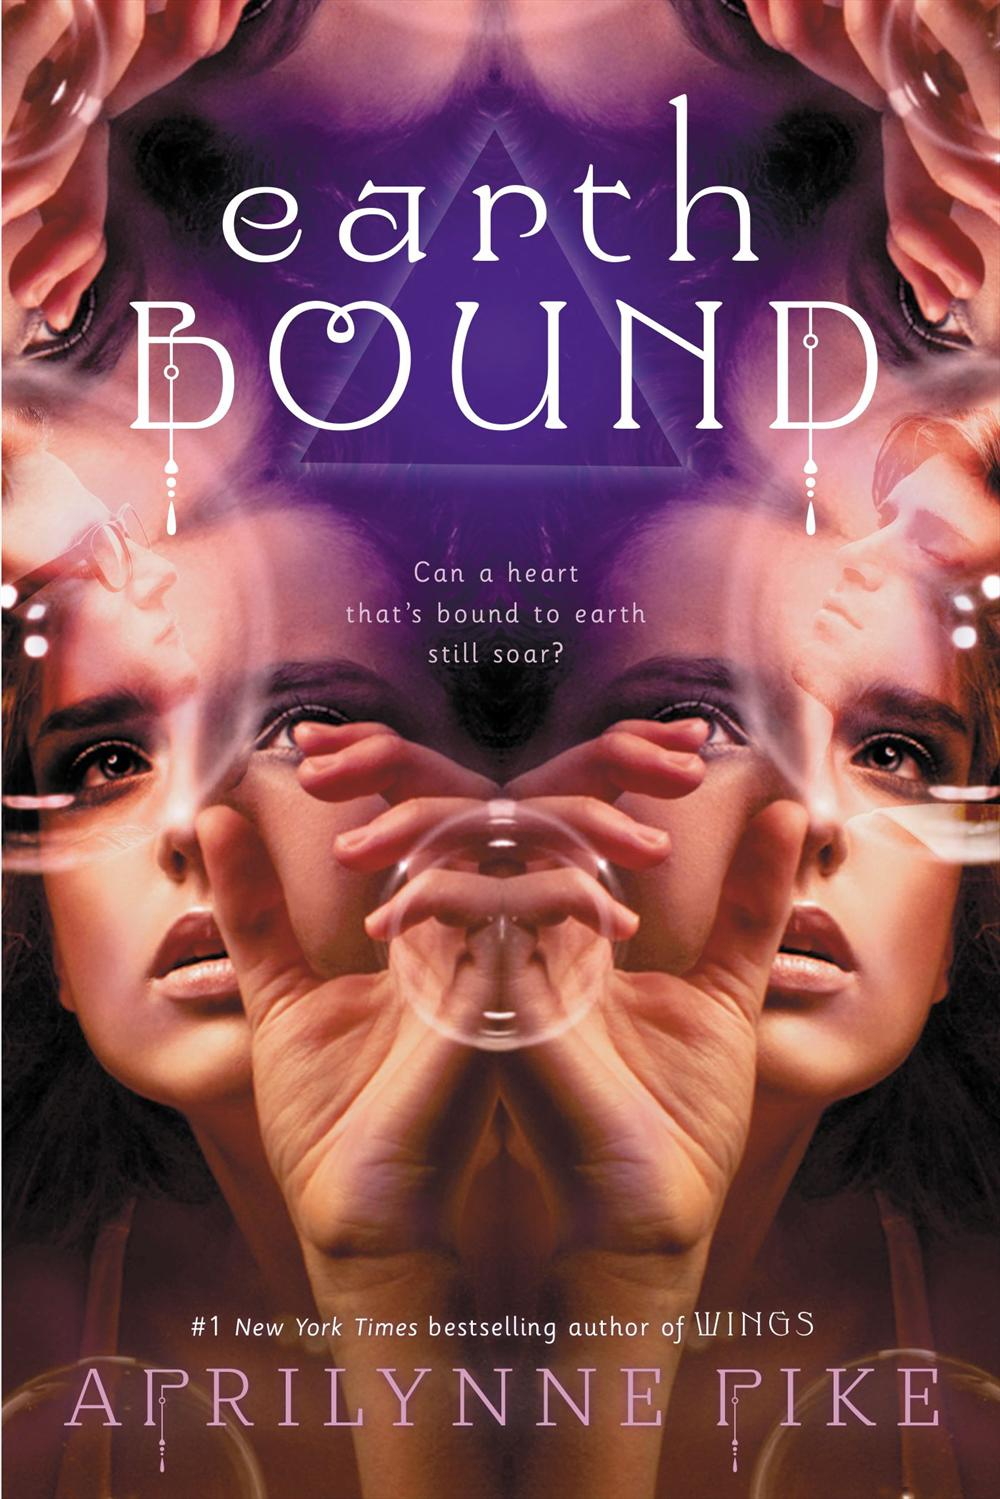 Earthbound by Aprilynne Pike